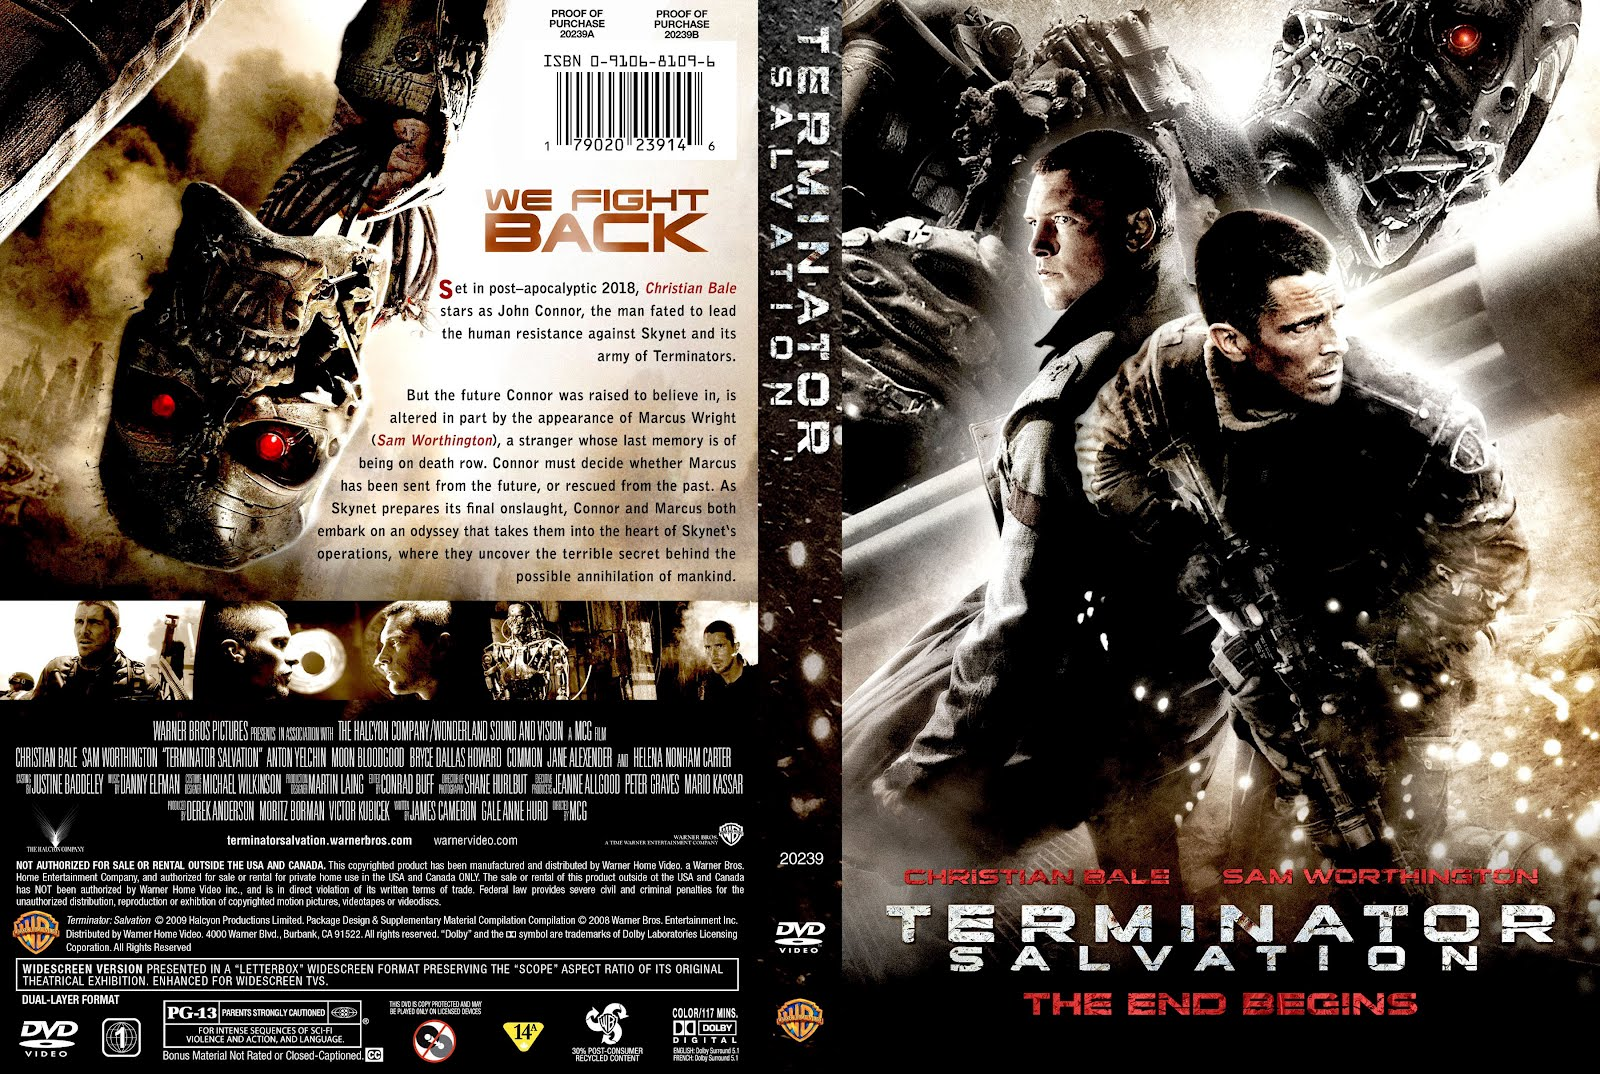 Fight Christian Terminator Salvation 2009 Movie Posters And Blu Ray Dvd Covers